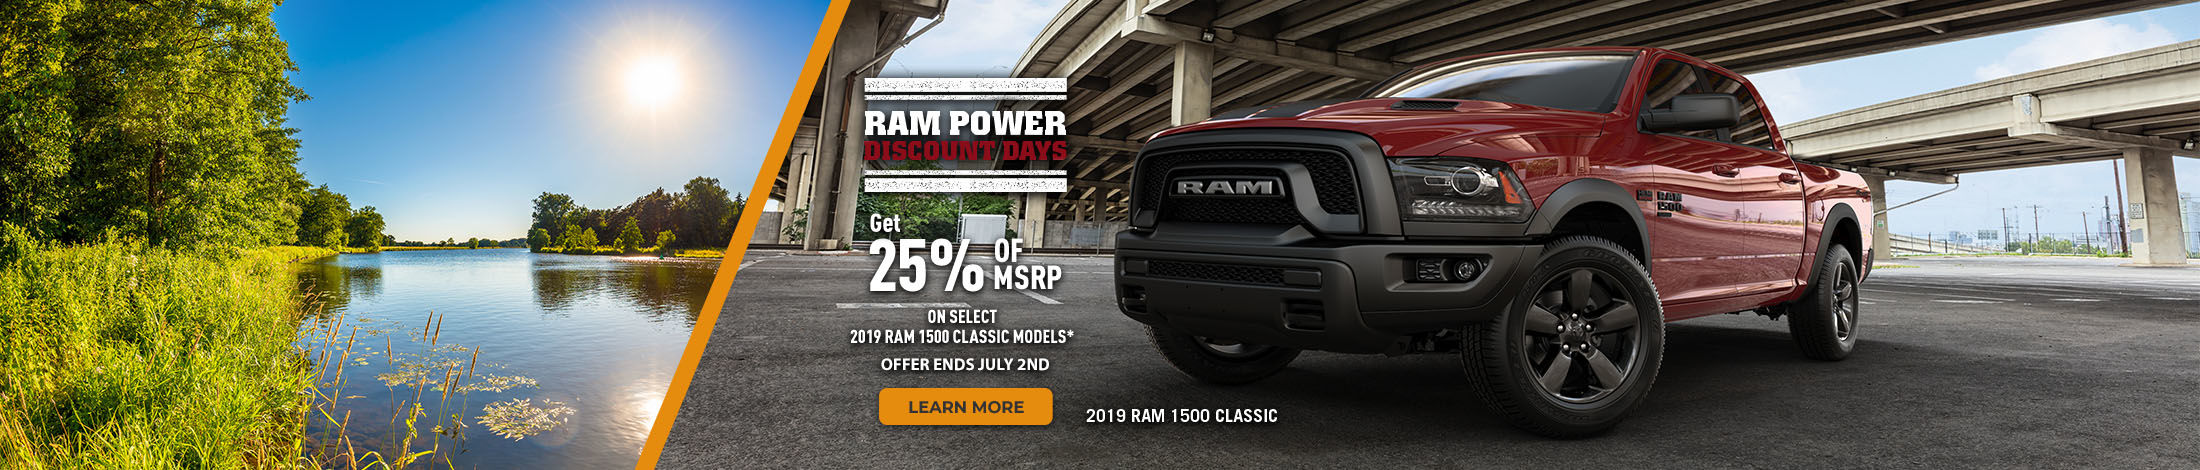 RAM power discount days